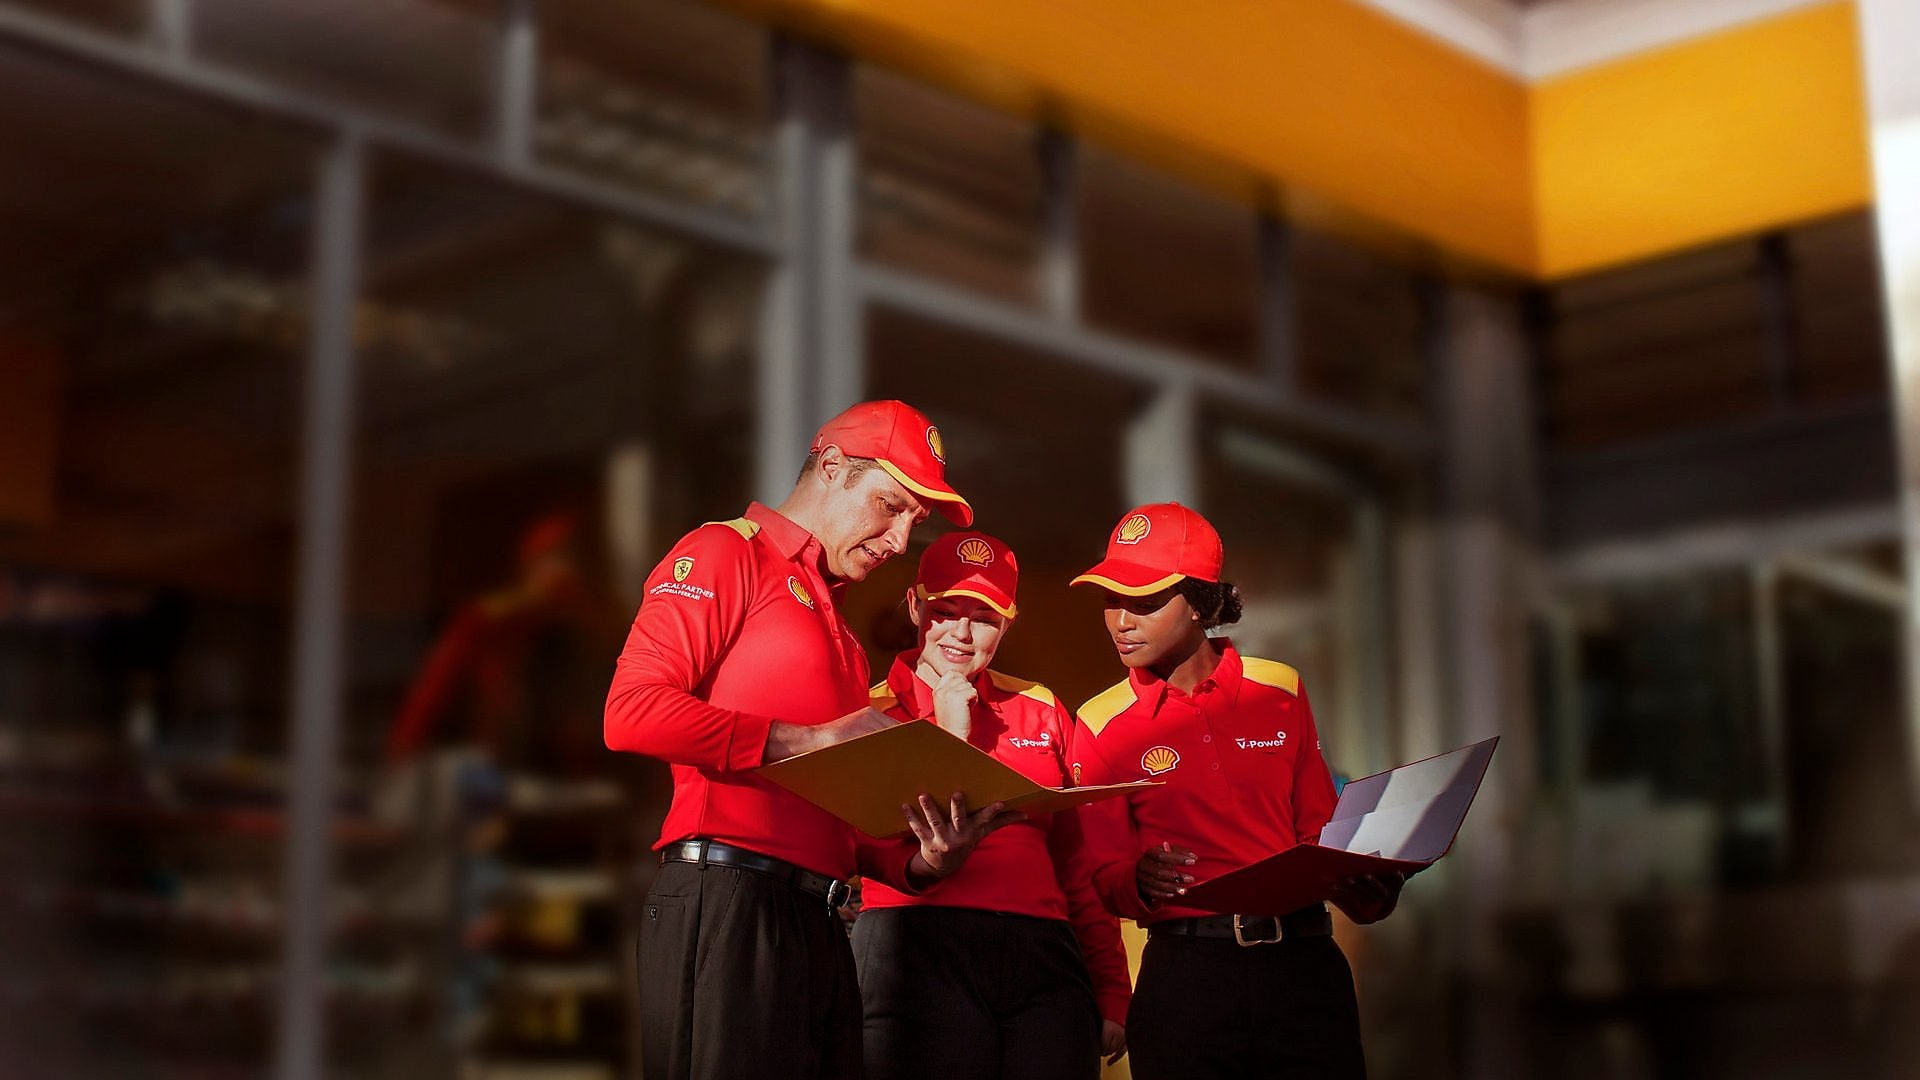 Current or former Shell employee, contractor or dependent